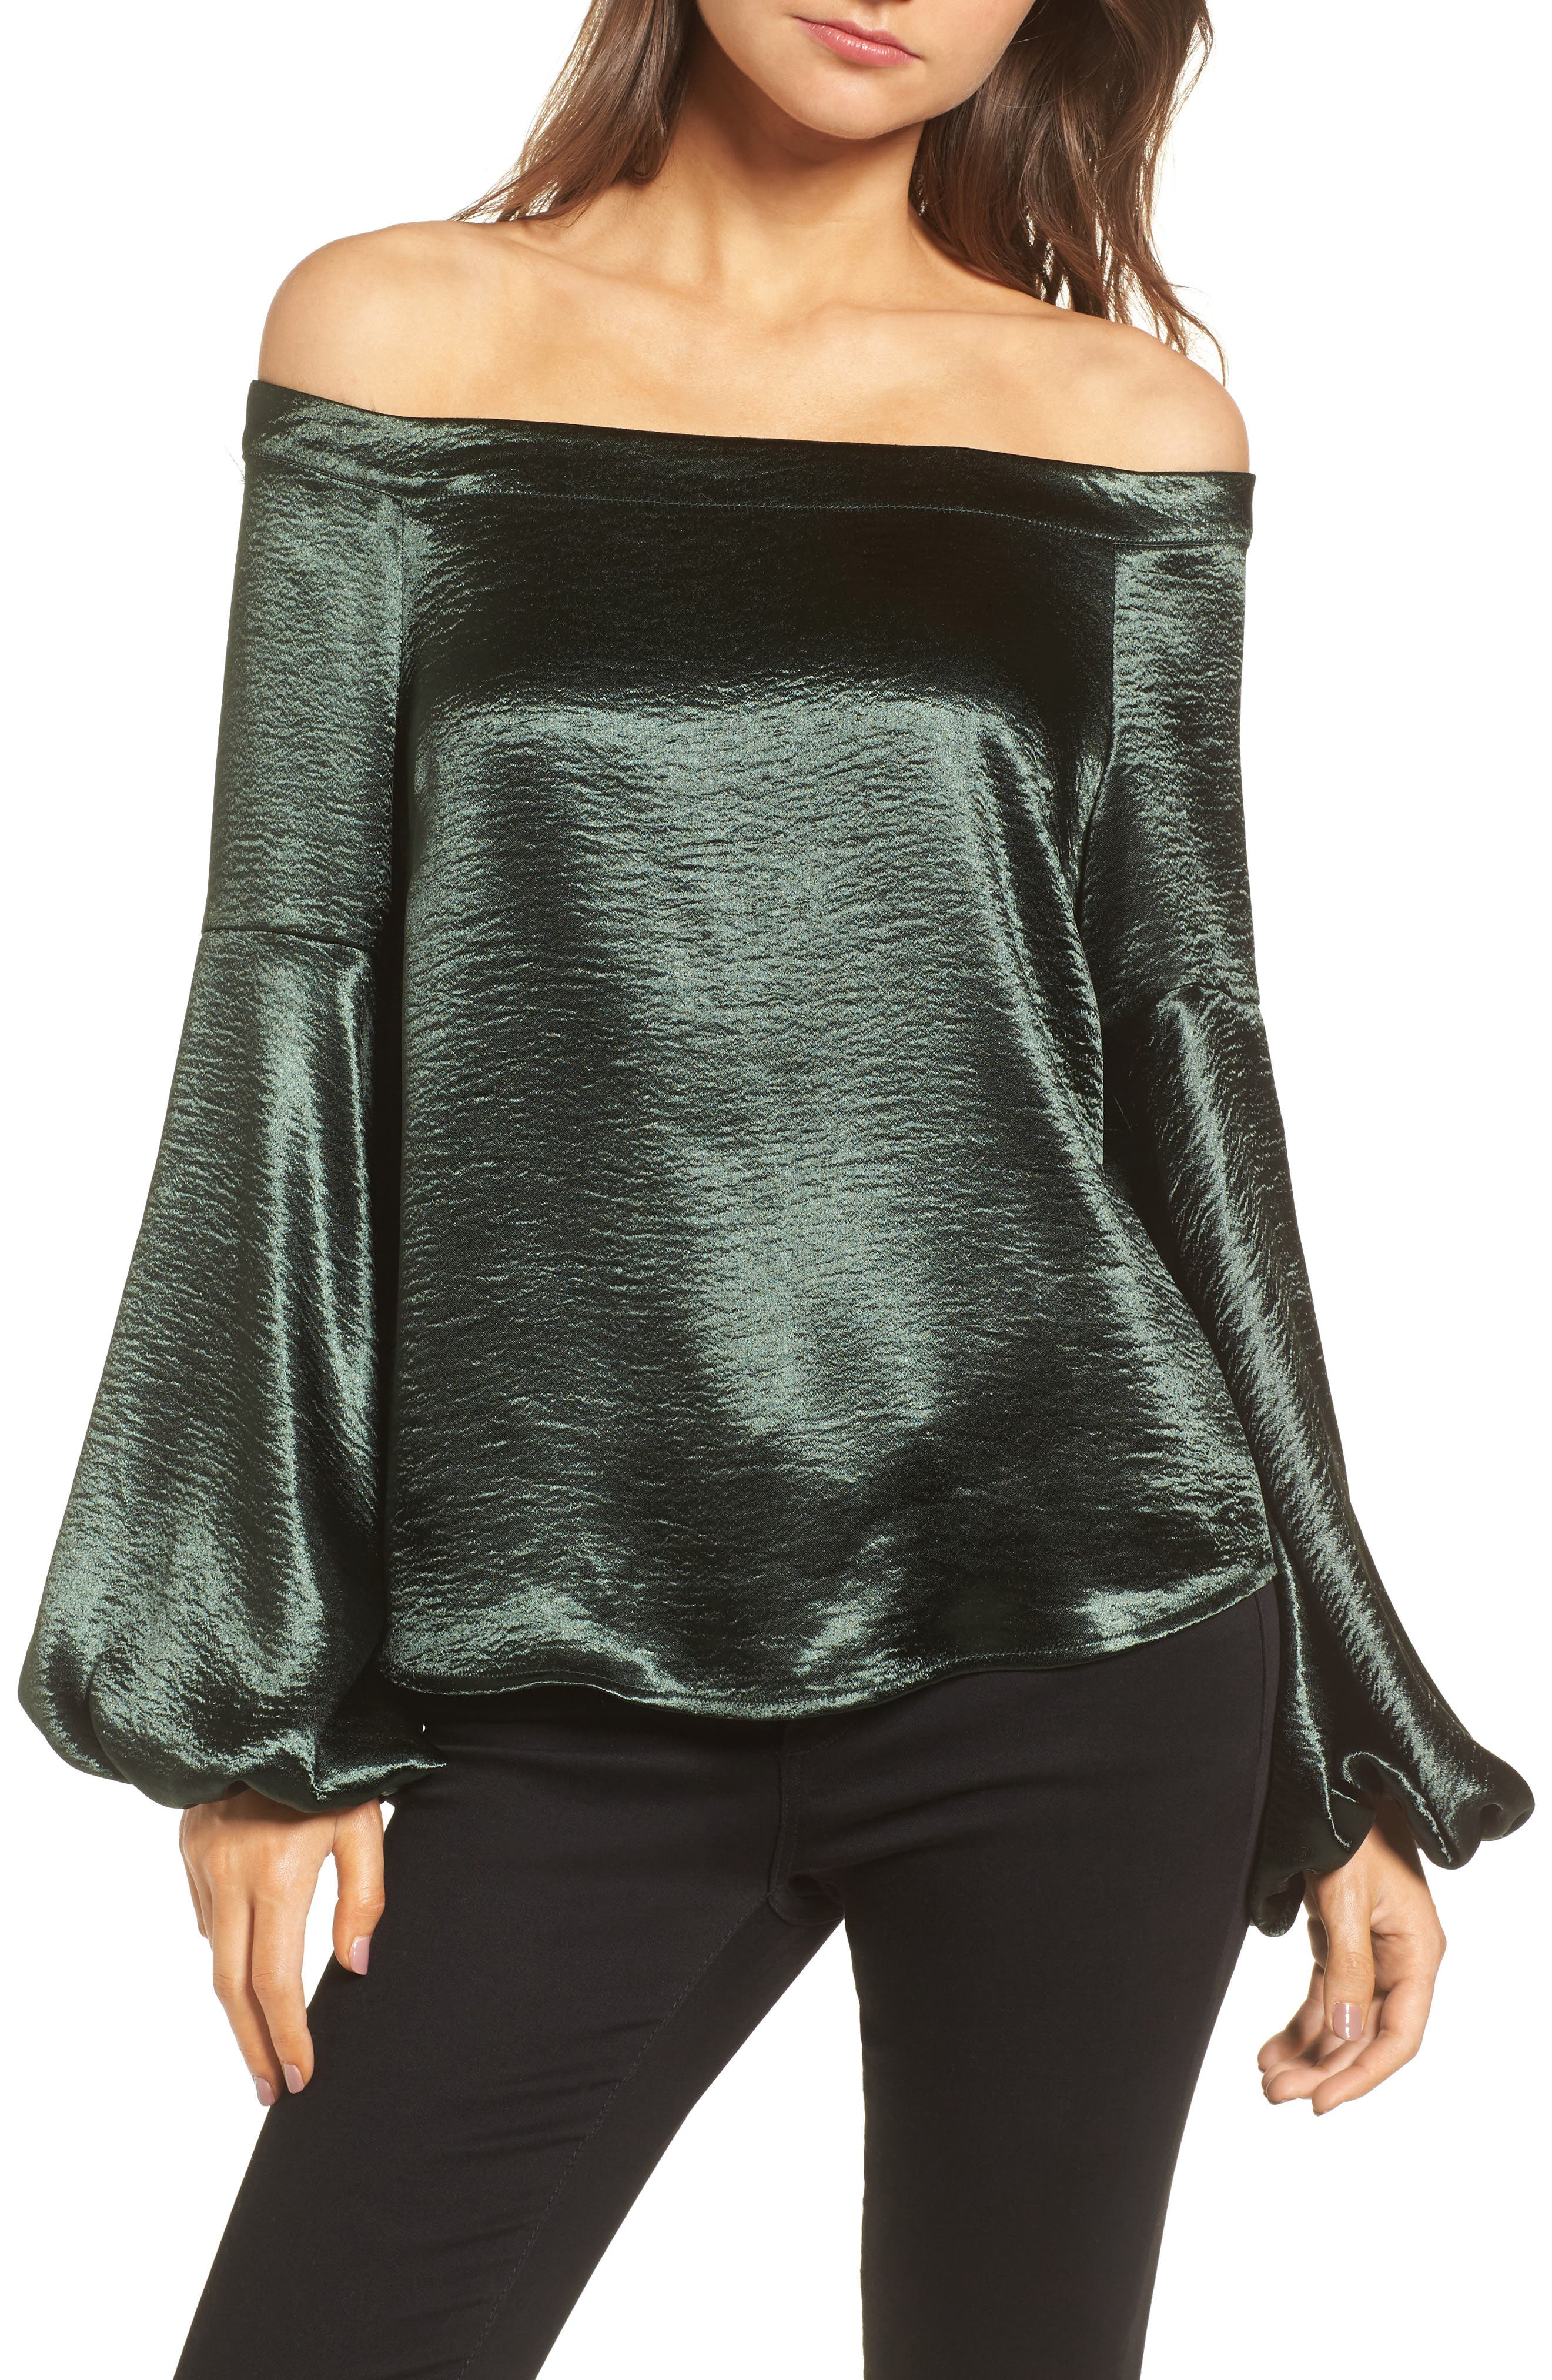 Jameson Off the Shoulder Top,                             Main thumbnail 1, color,                             300